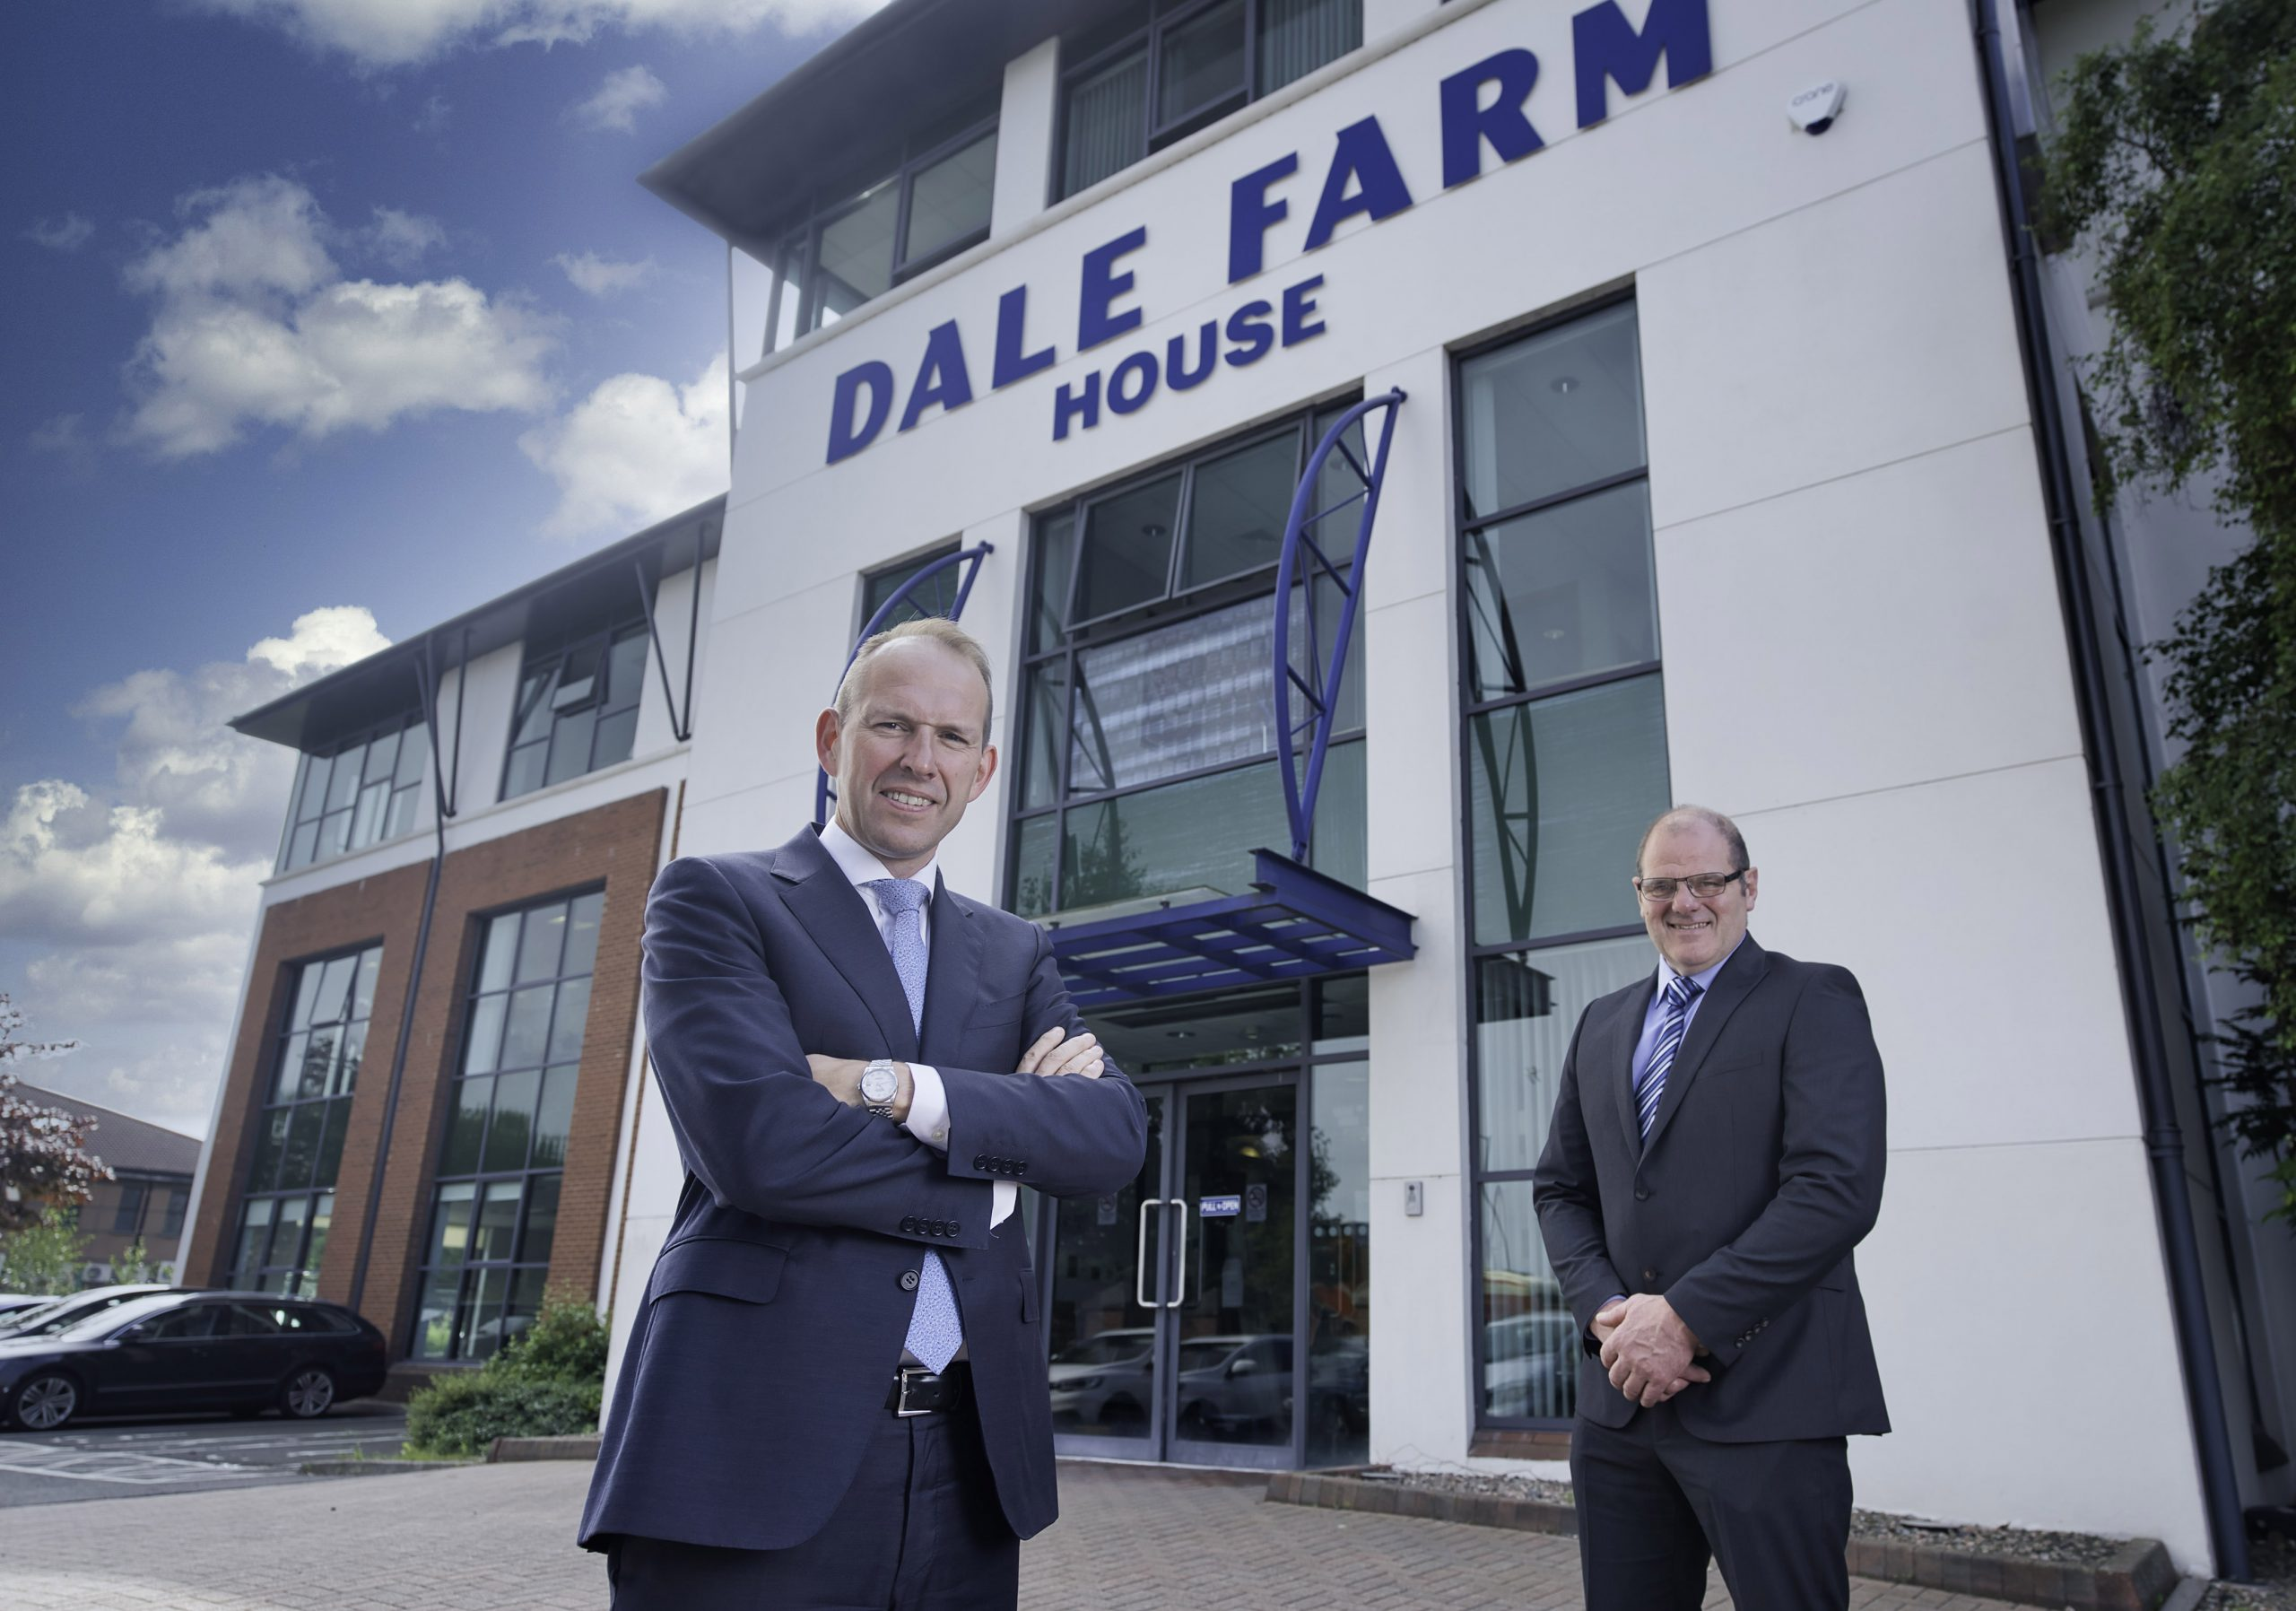 Dale Farm reports solid results